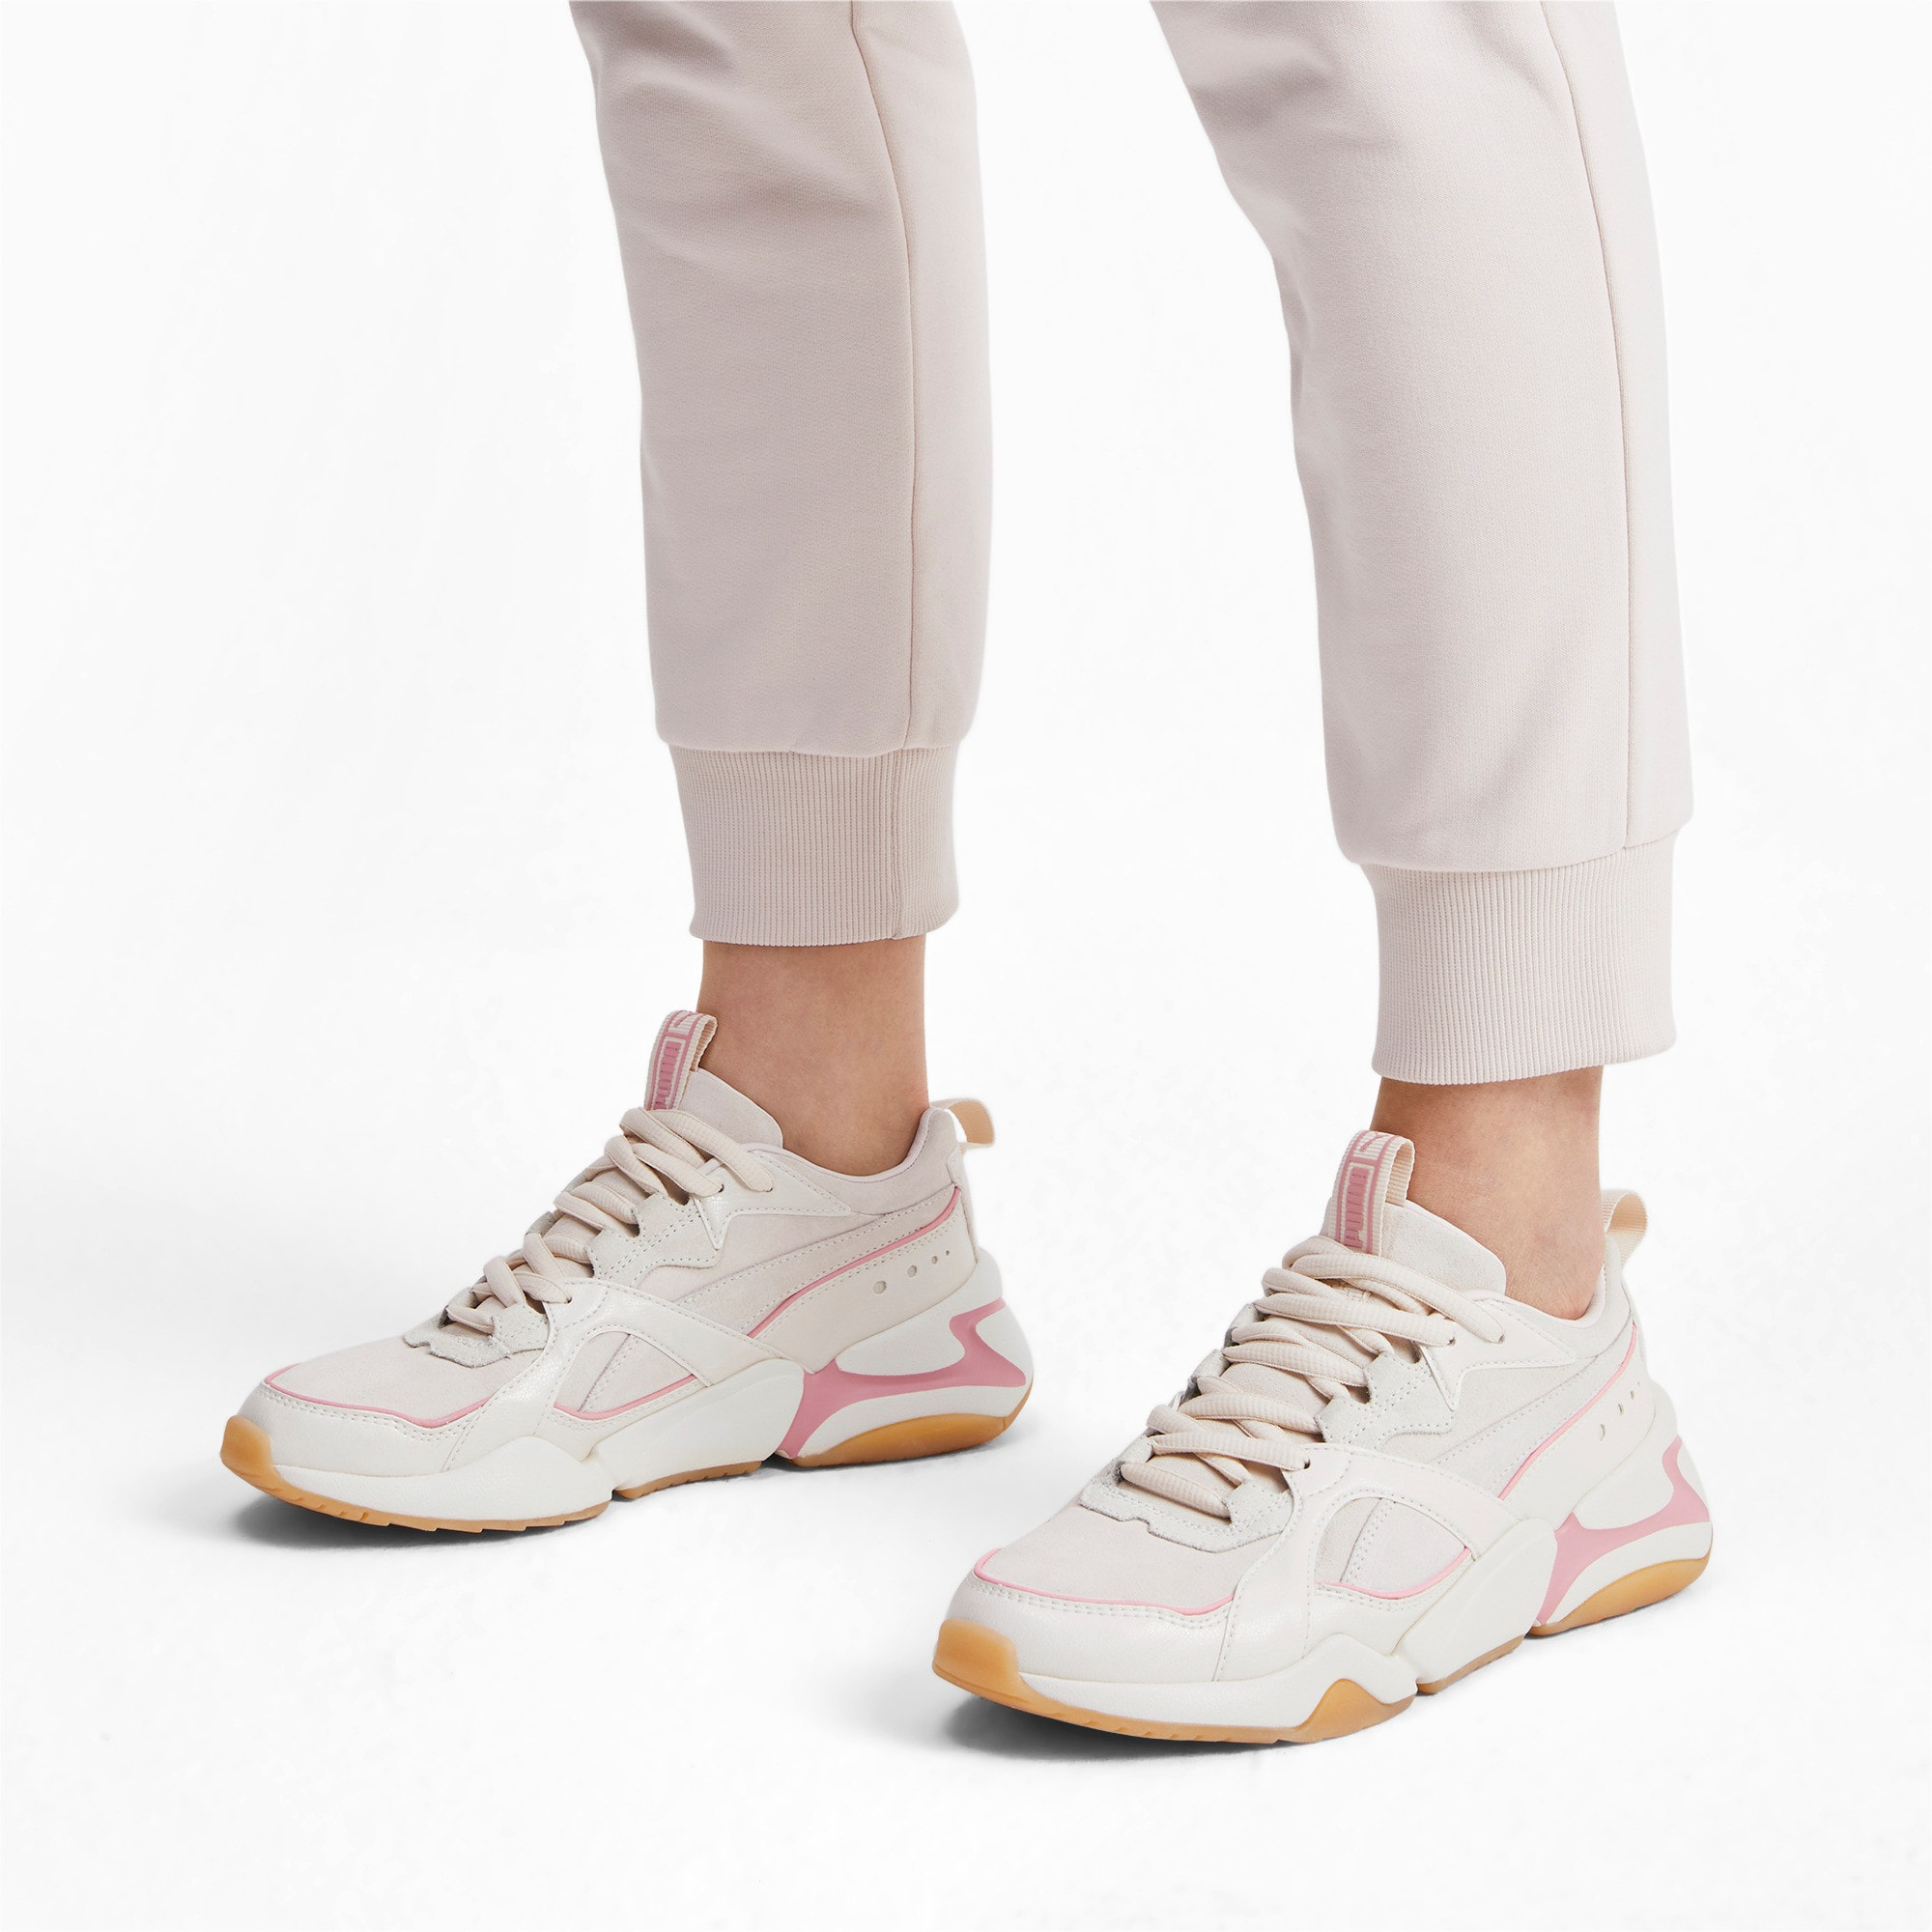 Thumbnail 2 of Nova 2 Suede Women's Trainers, Pastel Parchment-Whisp White, medium